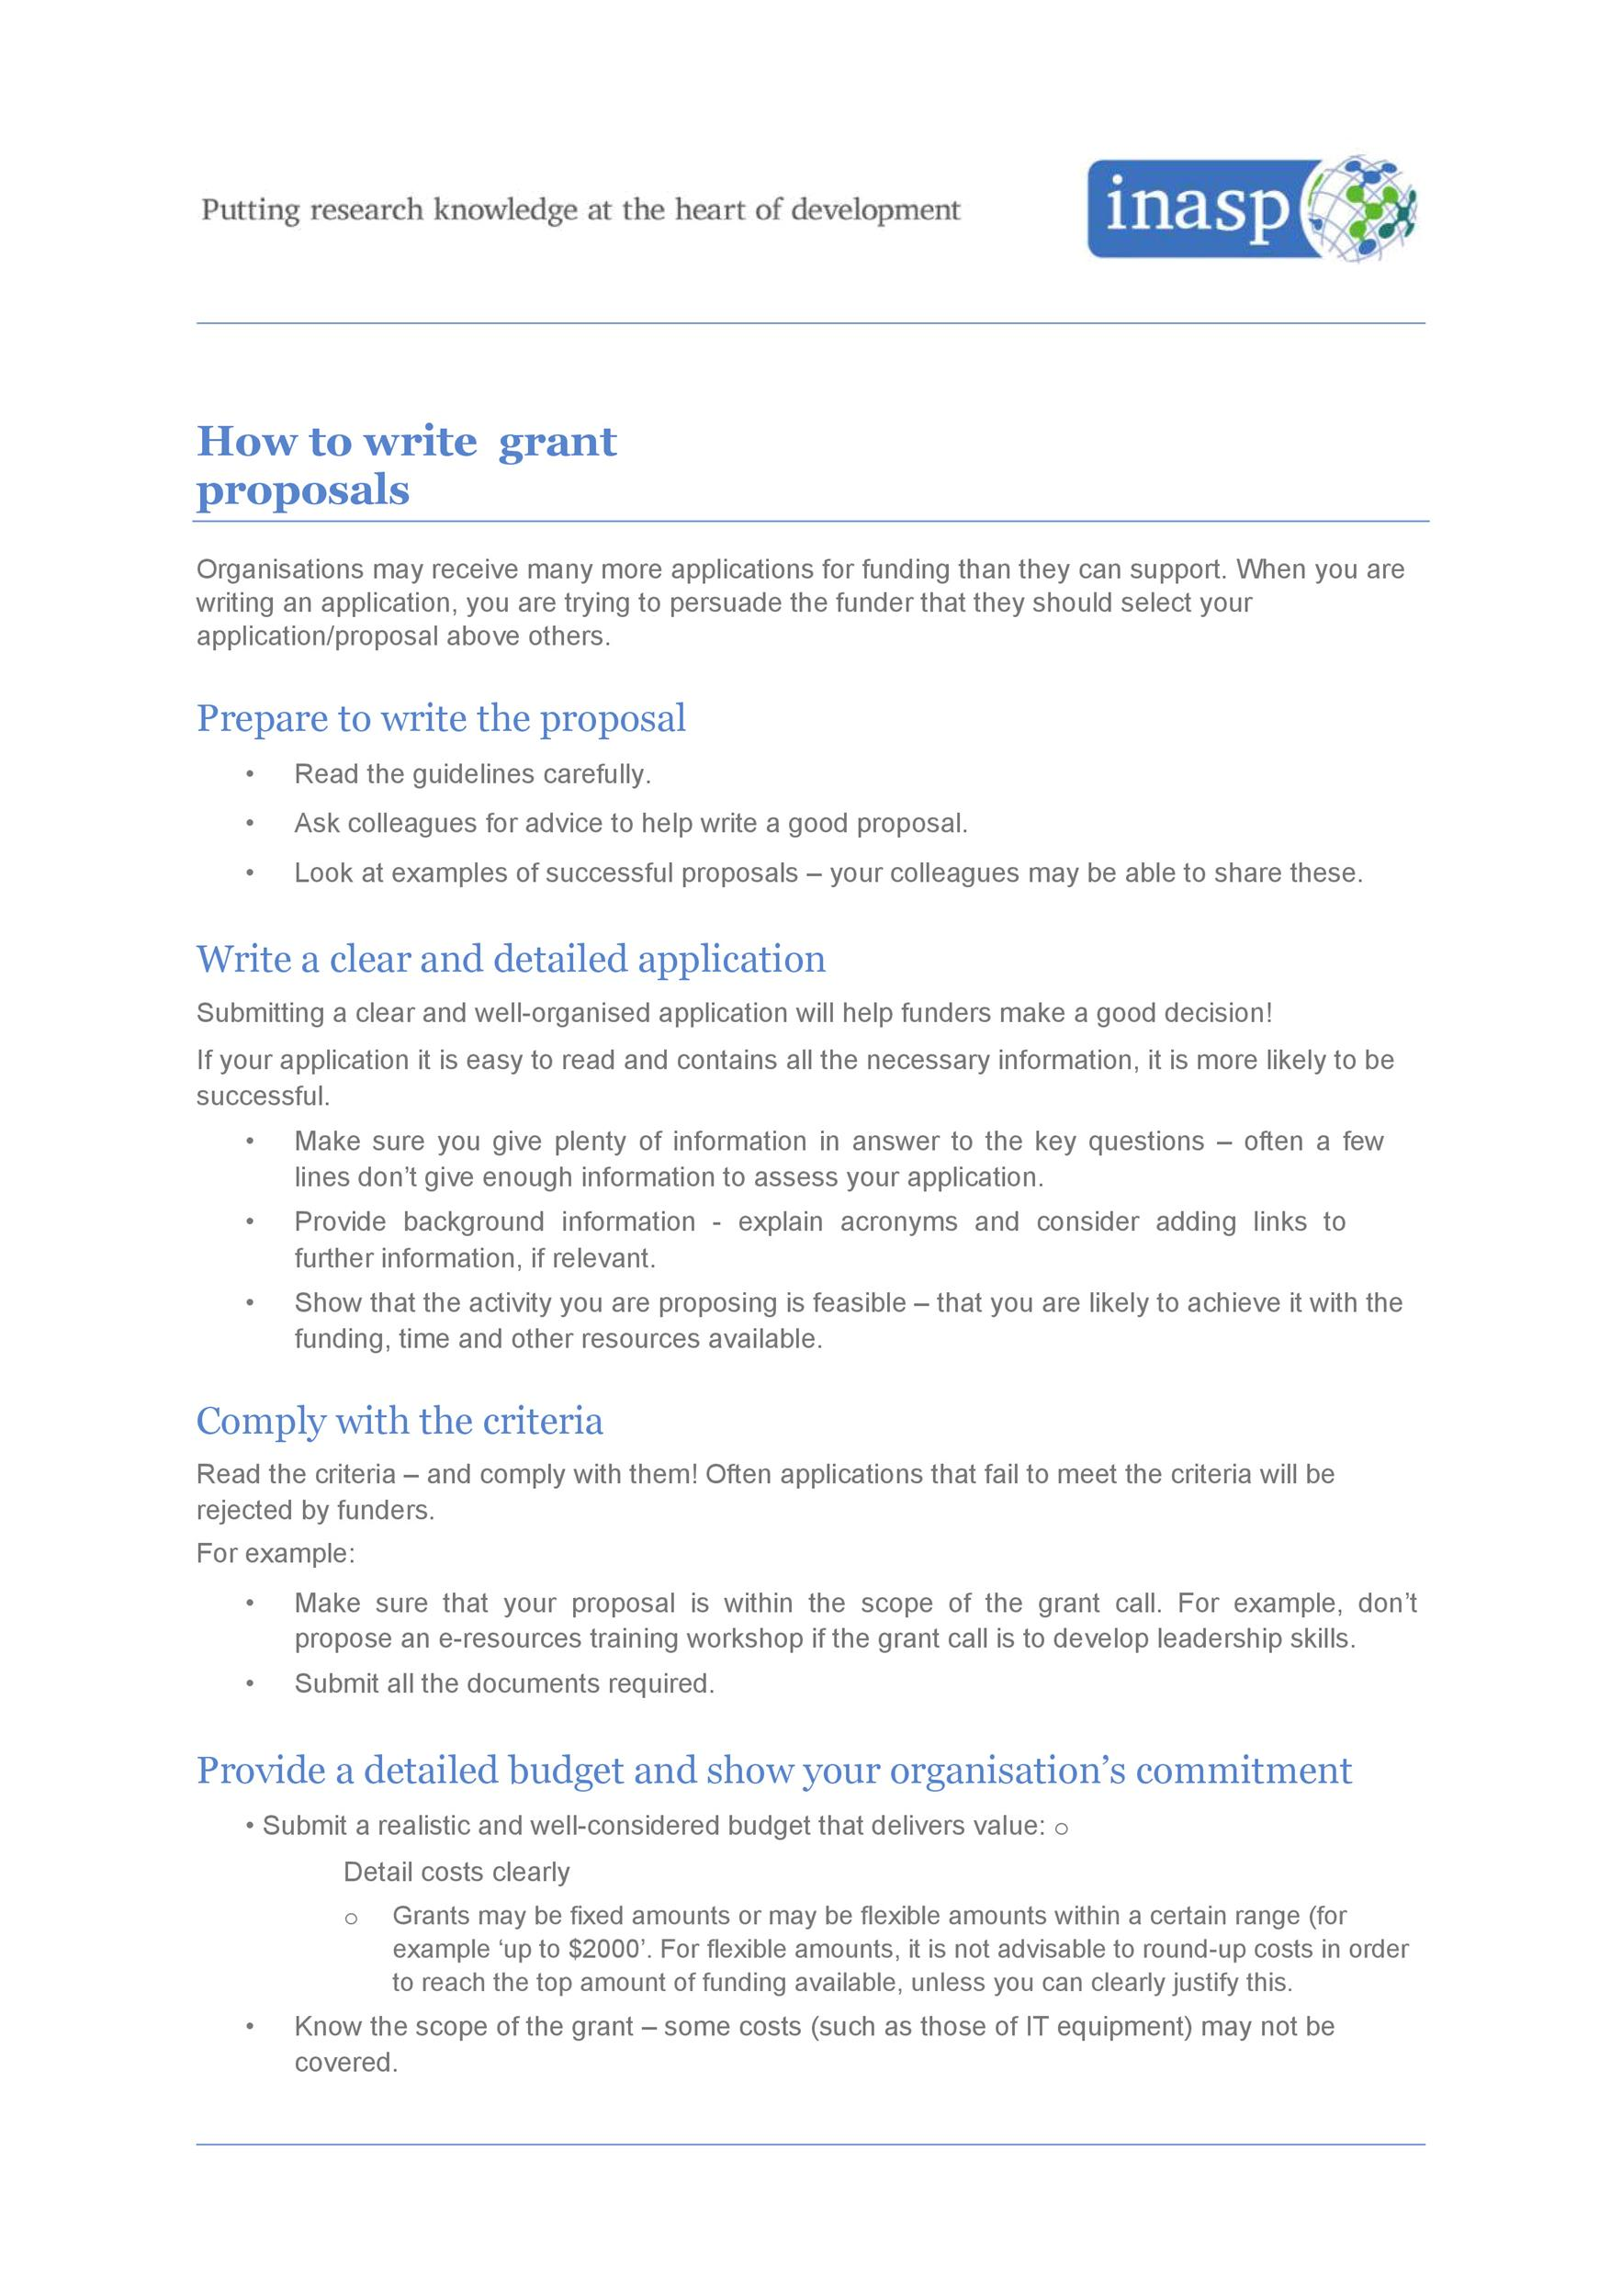 40+ Grant Proposal Templates [NSF, Non-Profit, Research] ᐅ